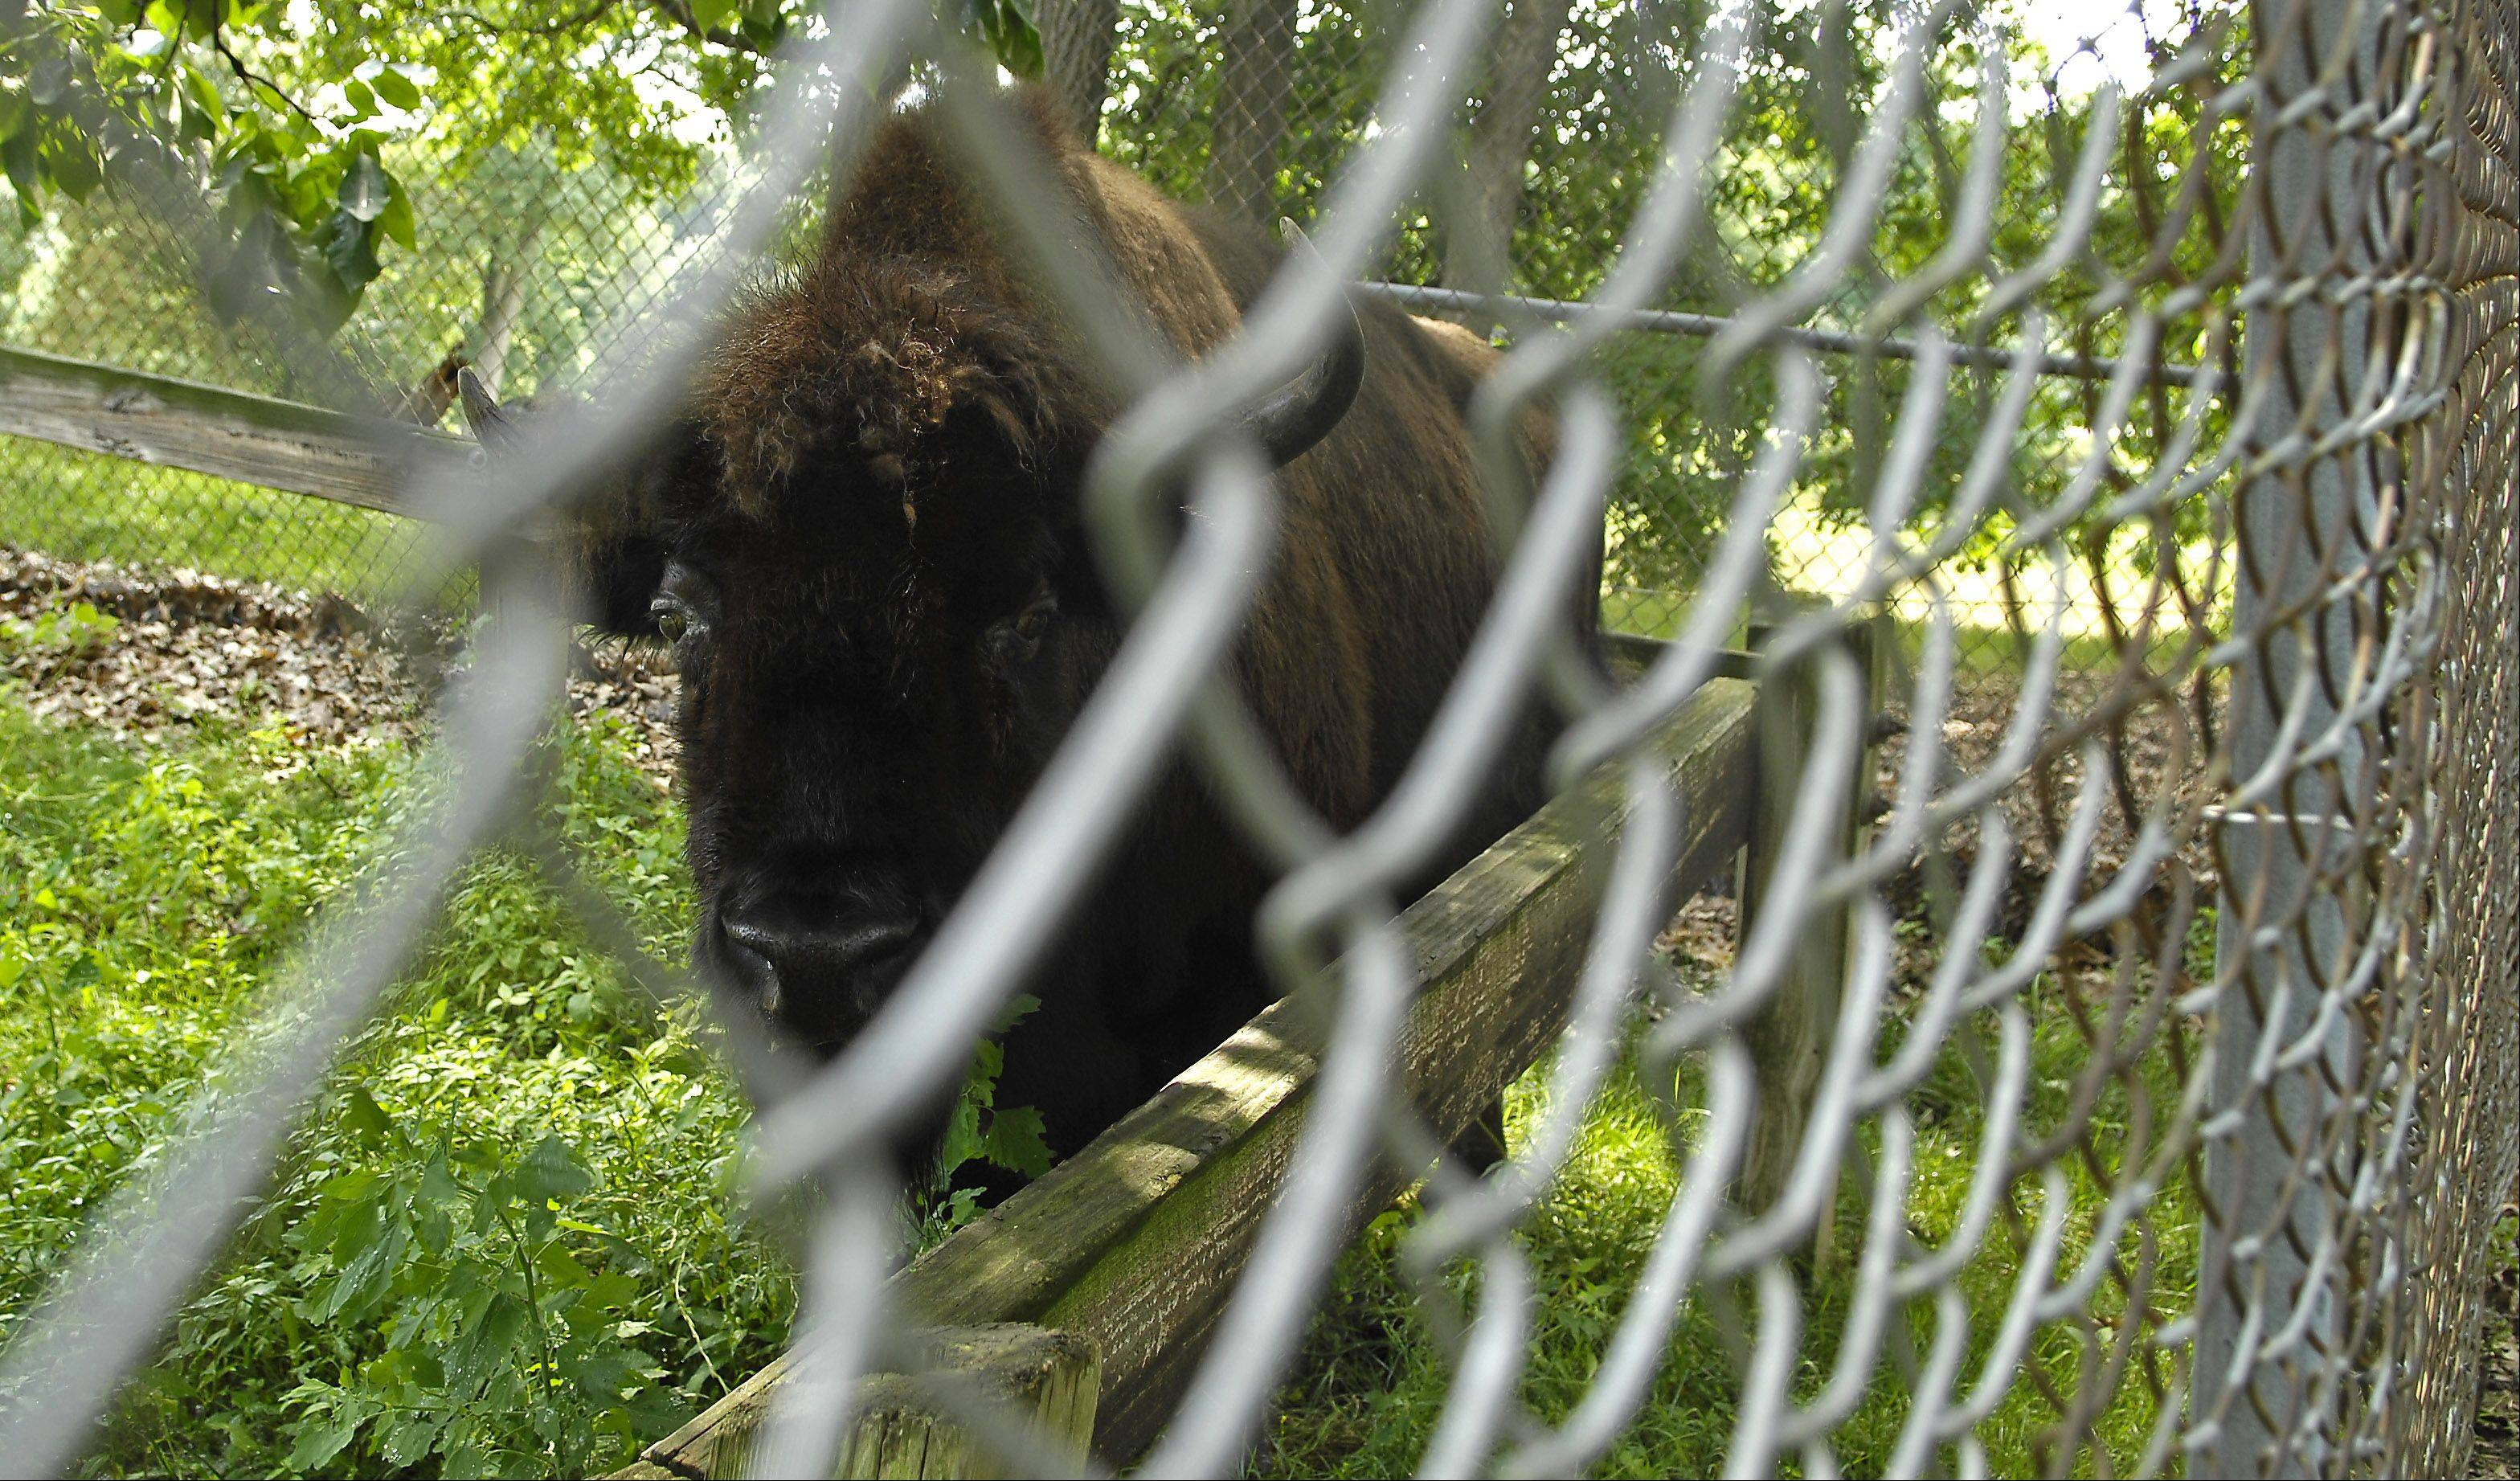 Pokey the bison will get a new pen and then hopefully some buddies at the Lords Park Zoo in Elgin now that the city and Friends of Lords Park Zoo have joined efforts to pay for it.